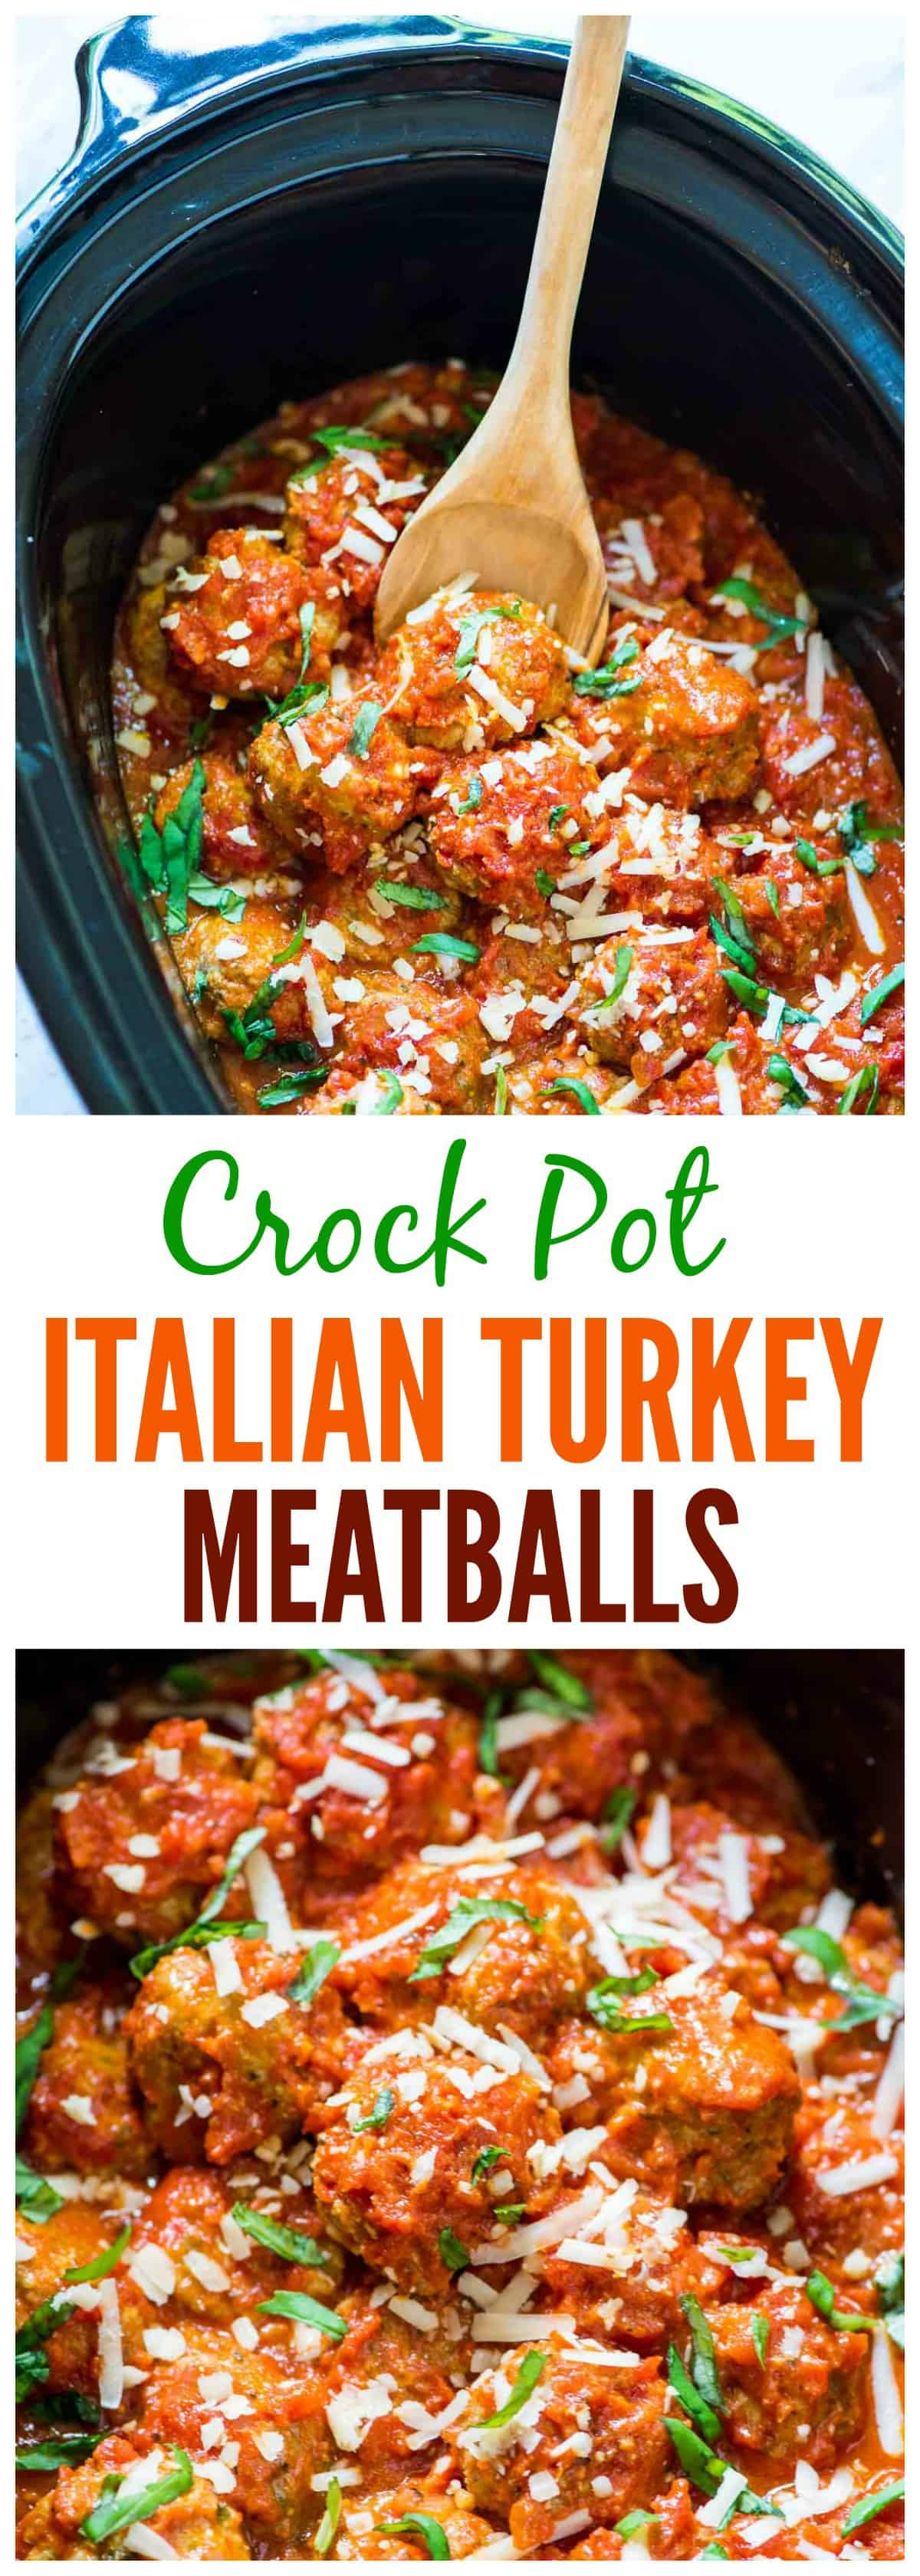 Crock Pot turkey meatballs are tender, juicy homemade turkey meatballs. The slow cooker makes this this Italian turkey meatballs recipe easy to make, and they're freezer friendly and healthy, too. #slowcooker #crockpot #turkey #healthyrecipe